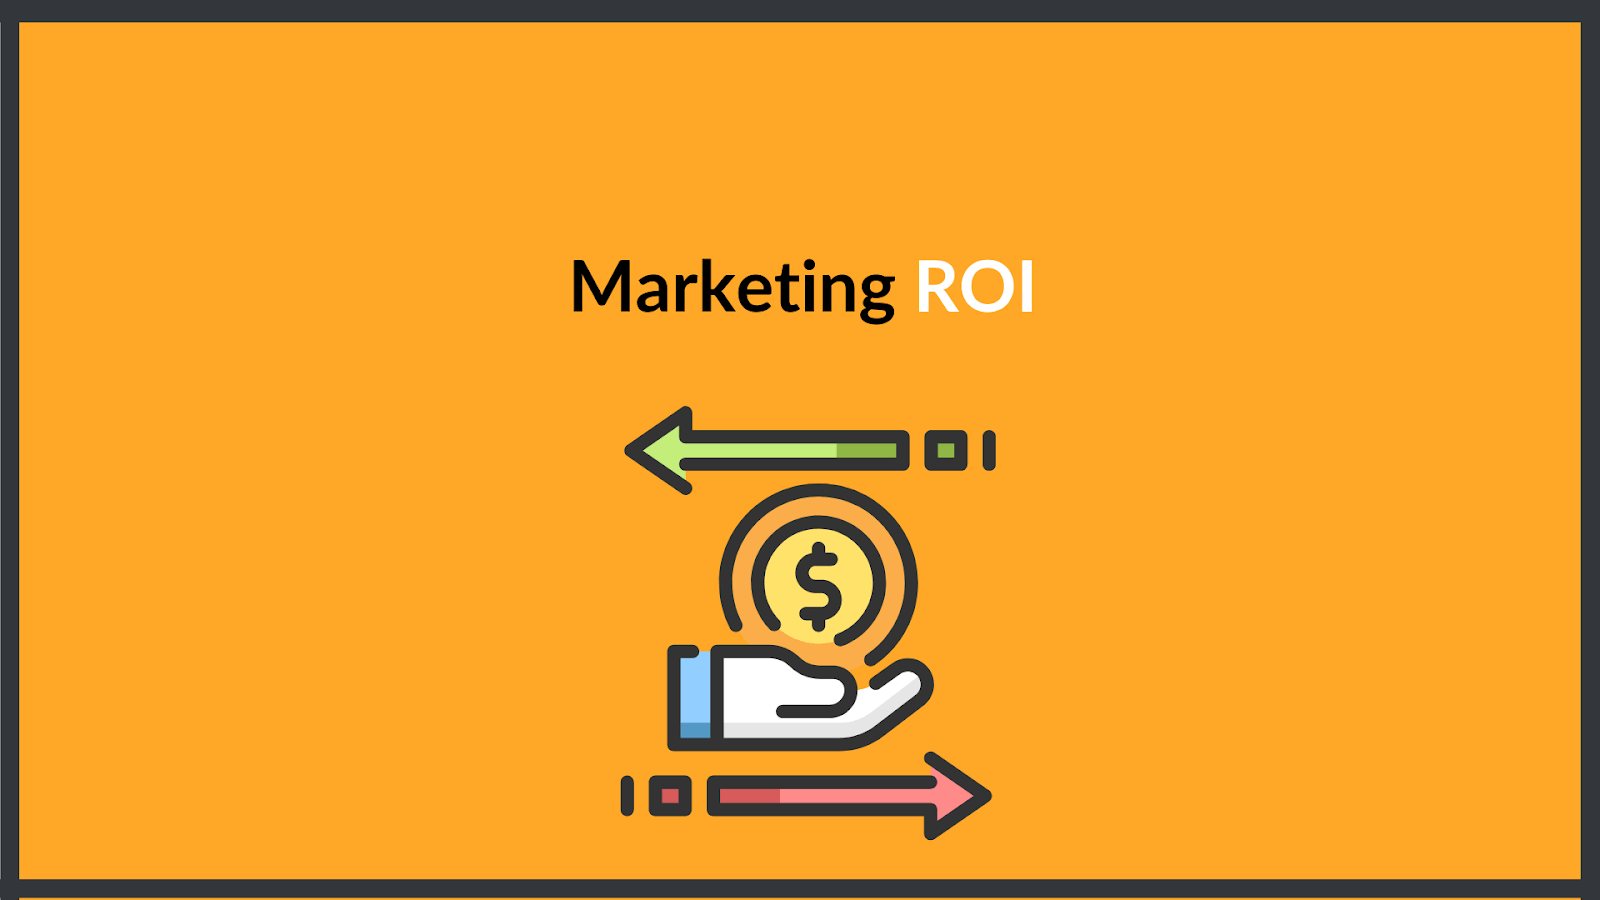 Marketing ROI, return on investment